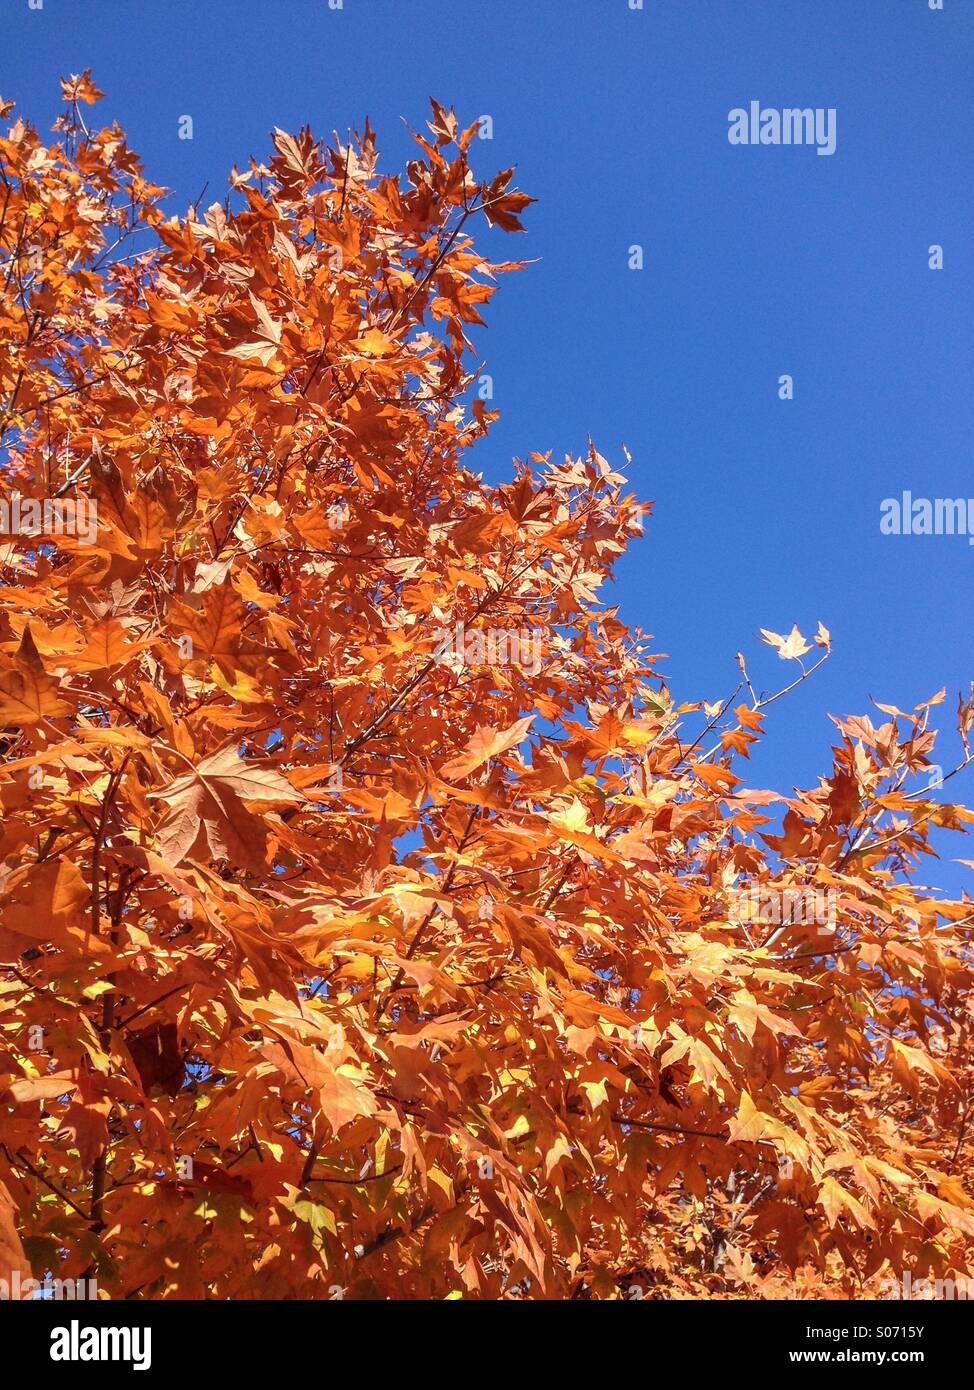 Leafs changing color in fall. - Stock Image